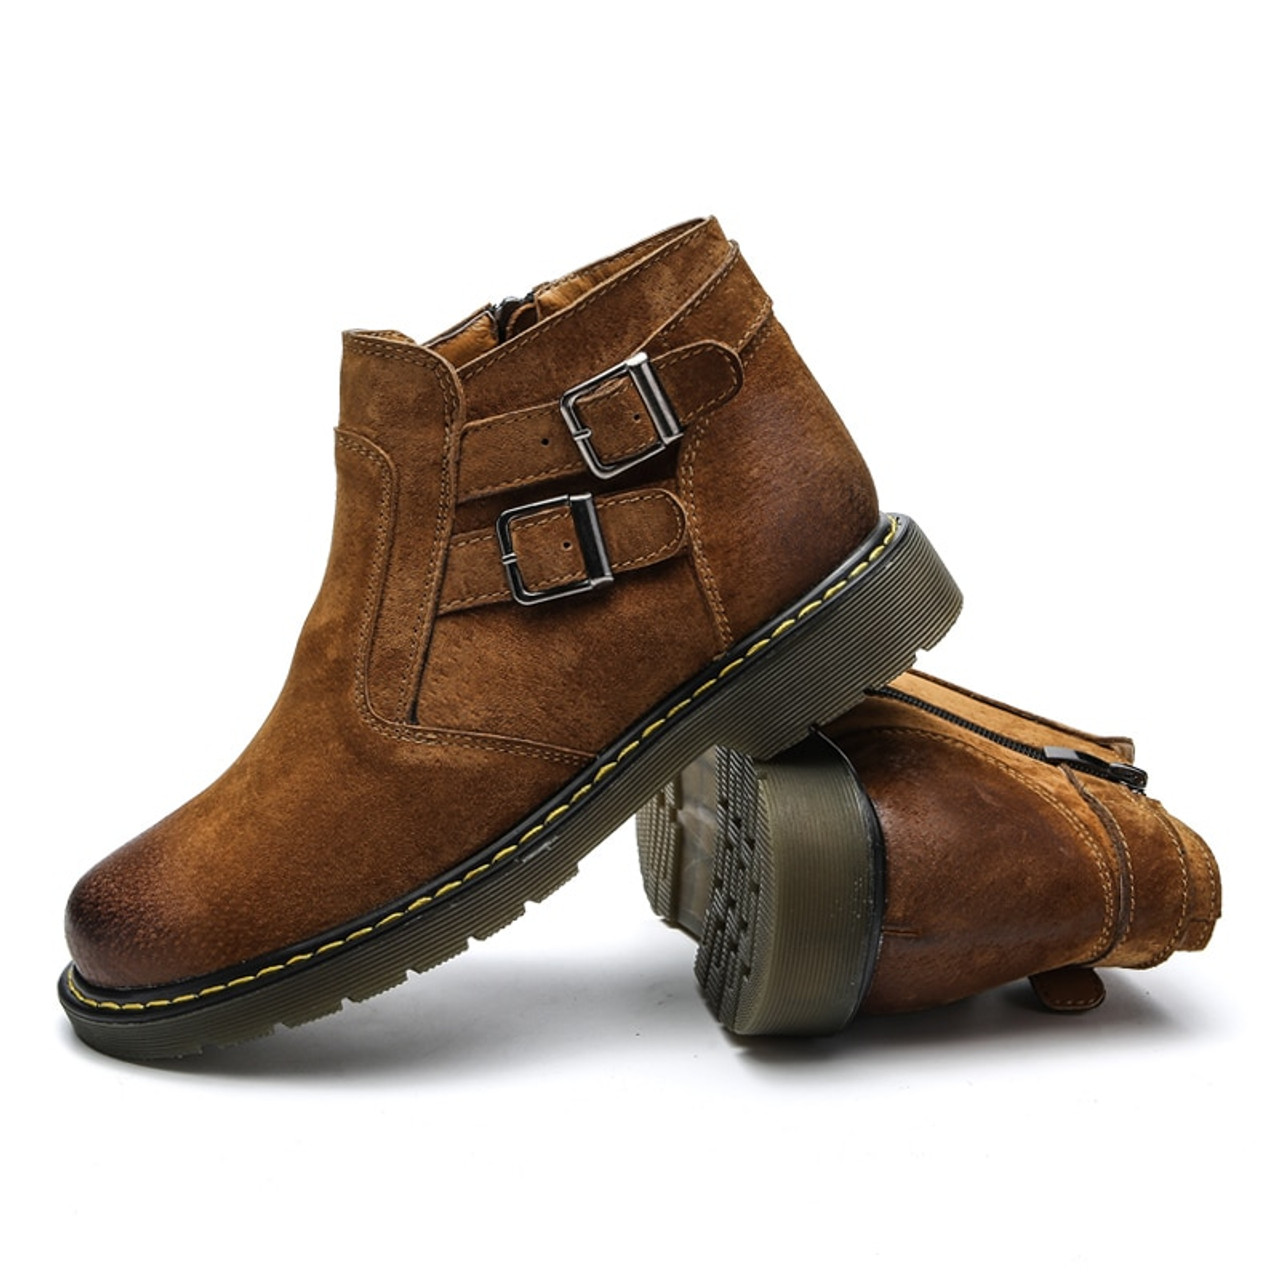 e90b40f0b42 Motorcycle boots men Genuine Leather shoes Fashion Ankle Boots Handmade  Retro zip Mens moto High Quality Vintage 39-44